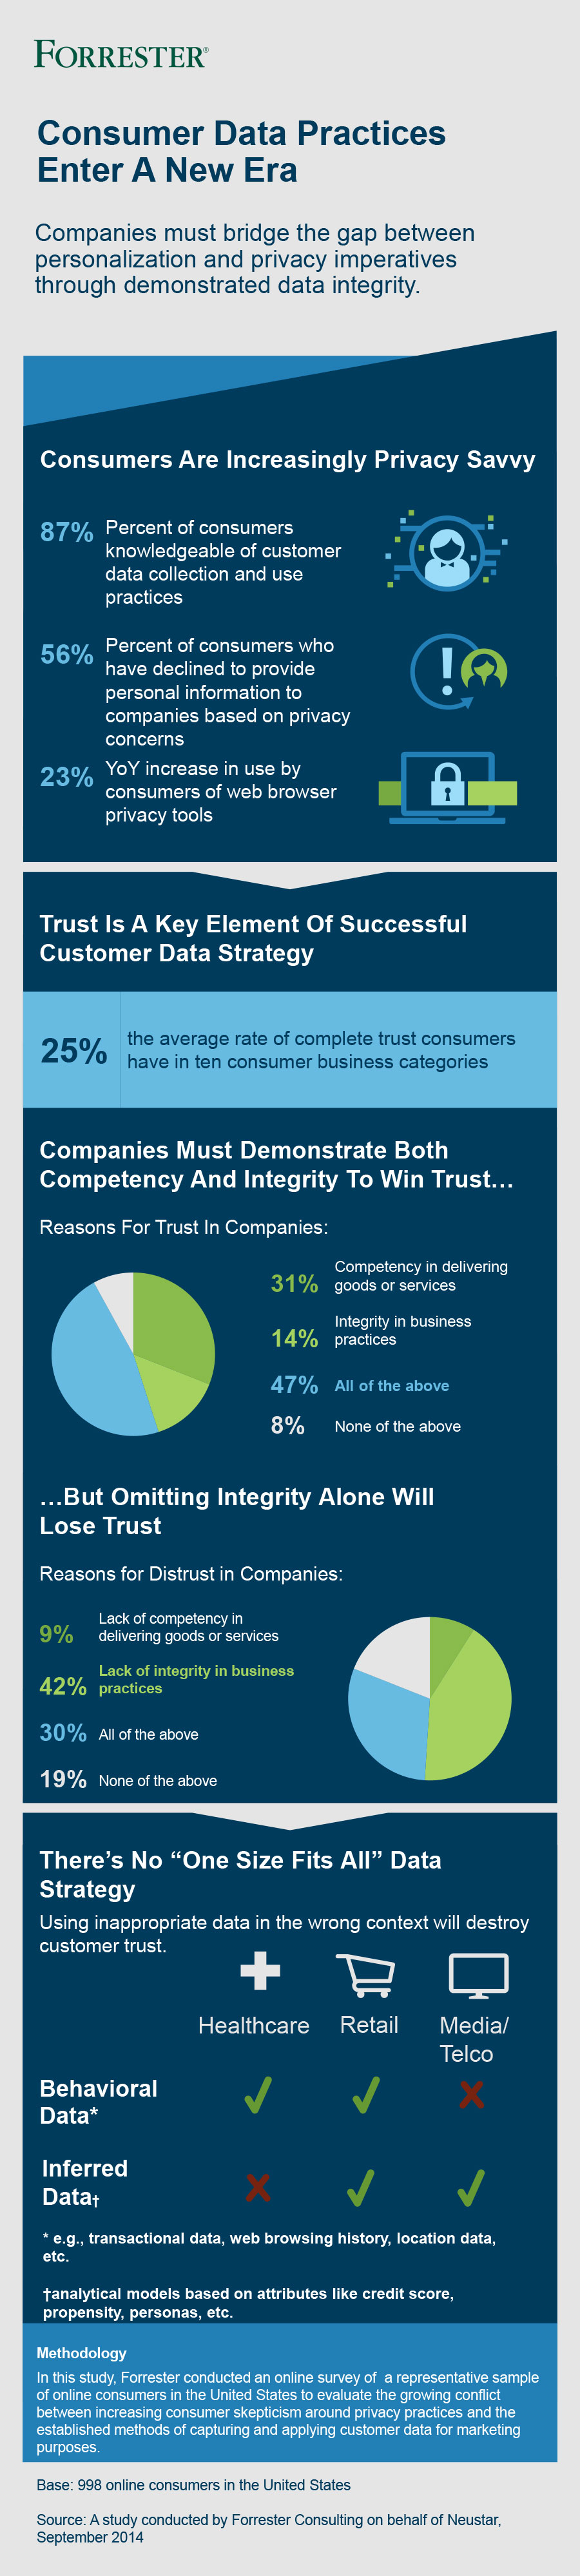 Forrester Report on Consumer Data Practices Infographic